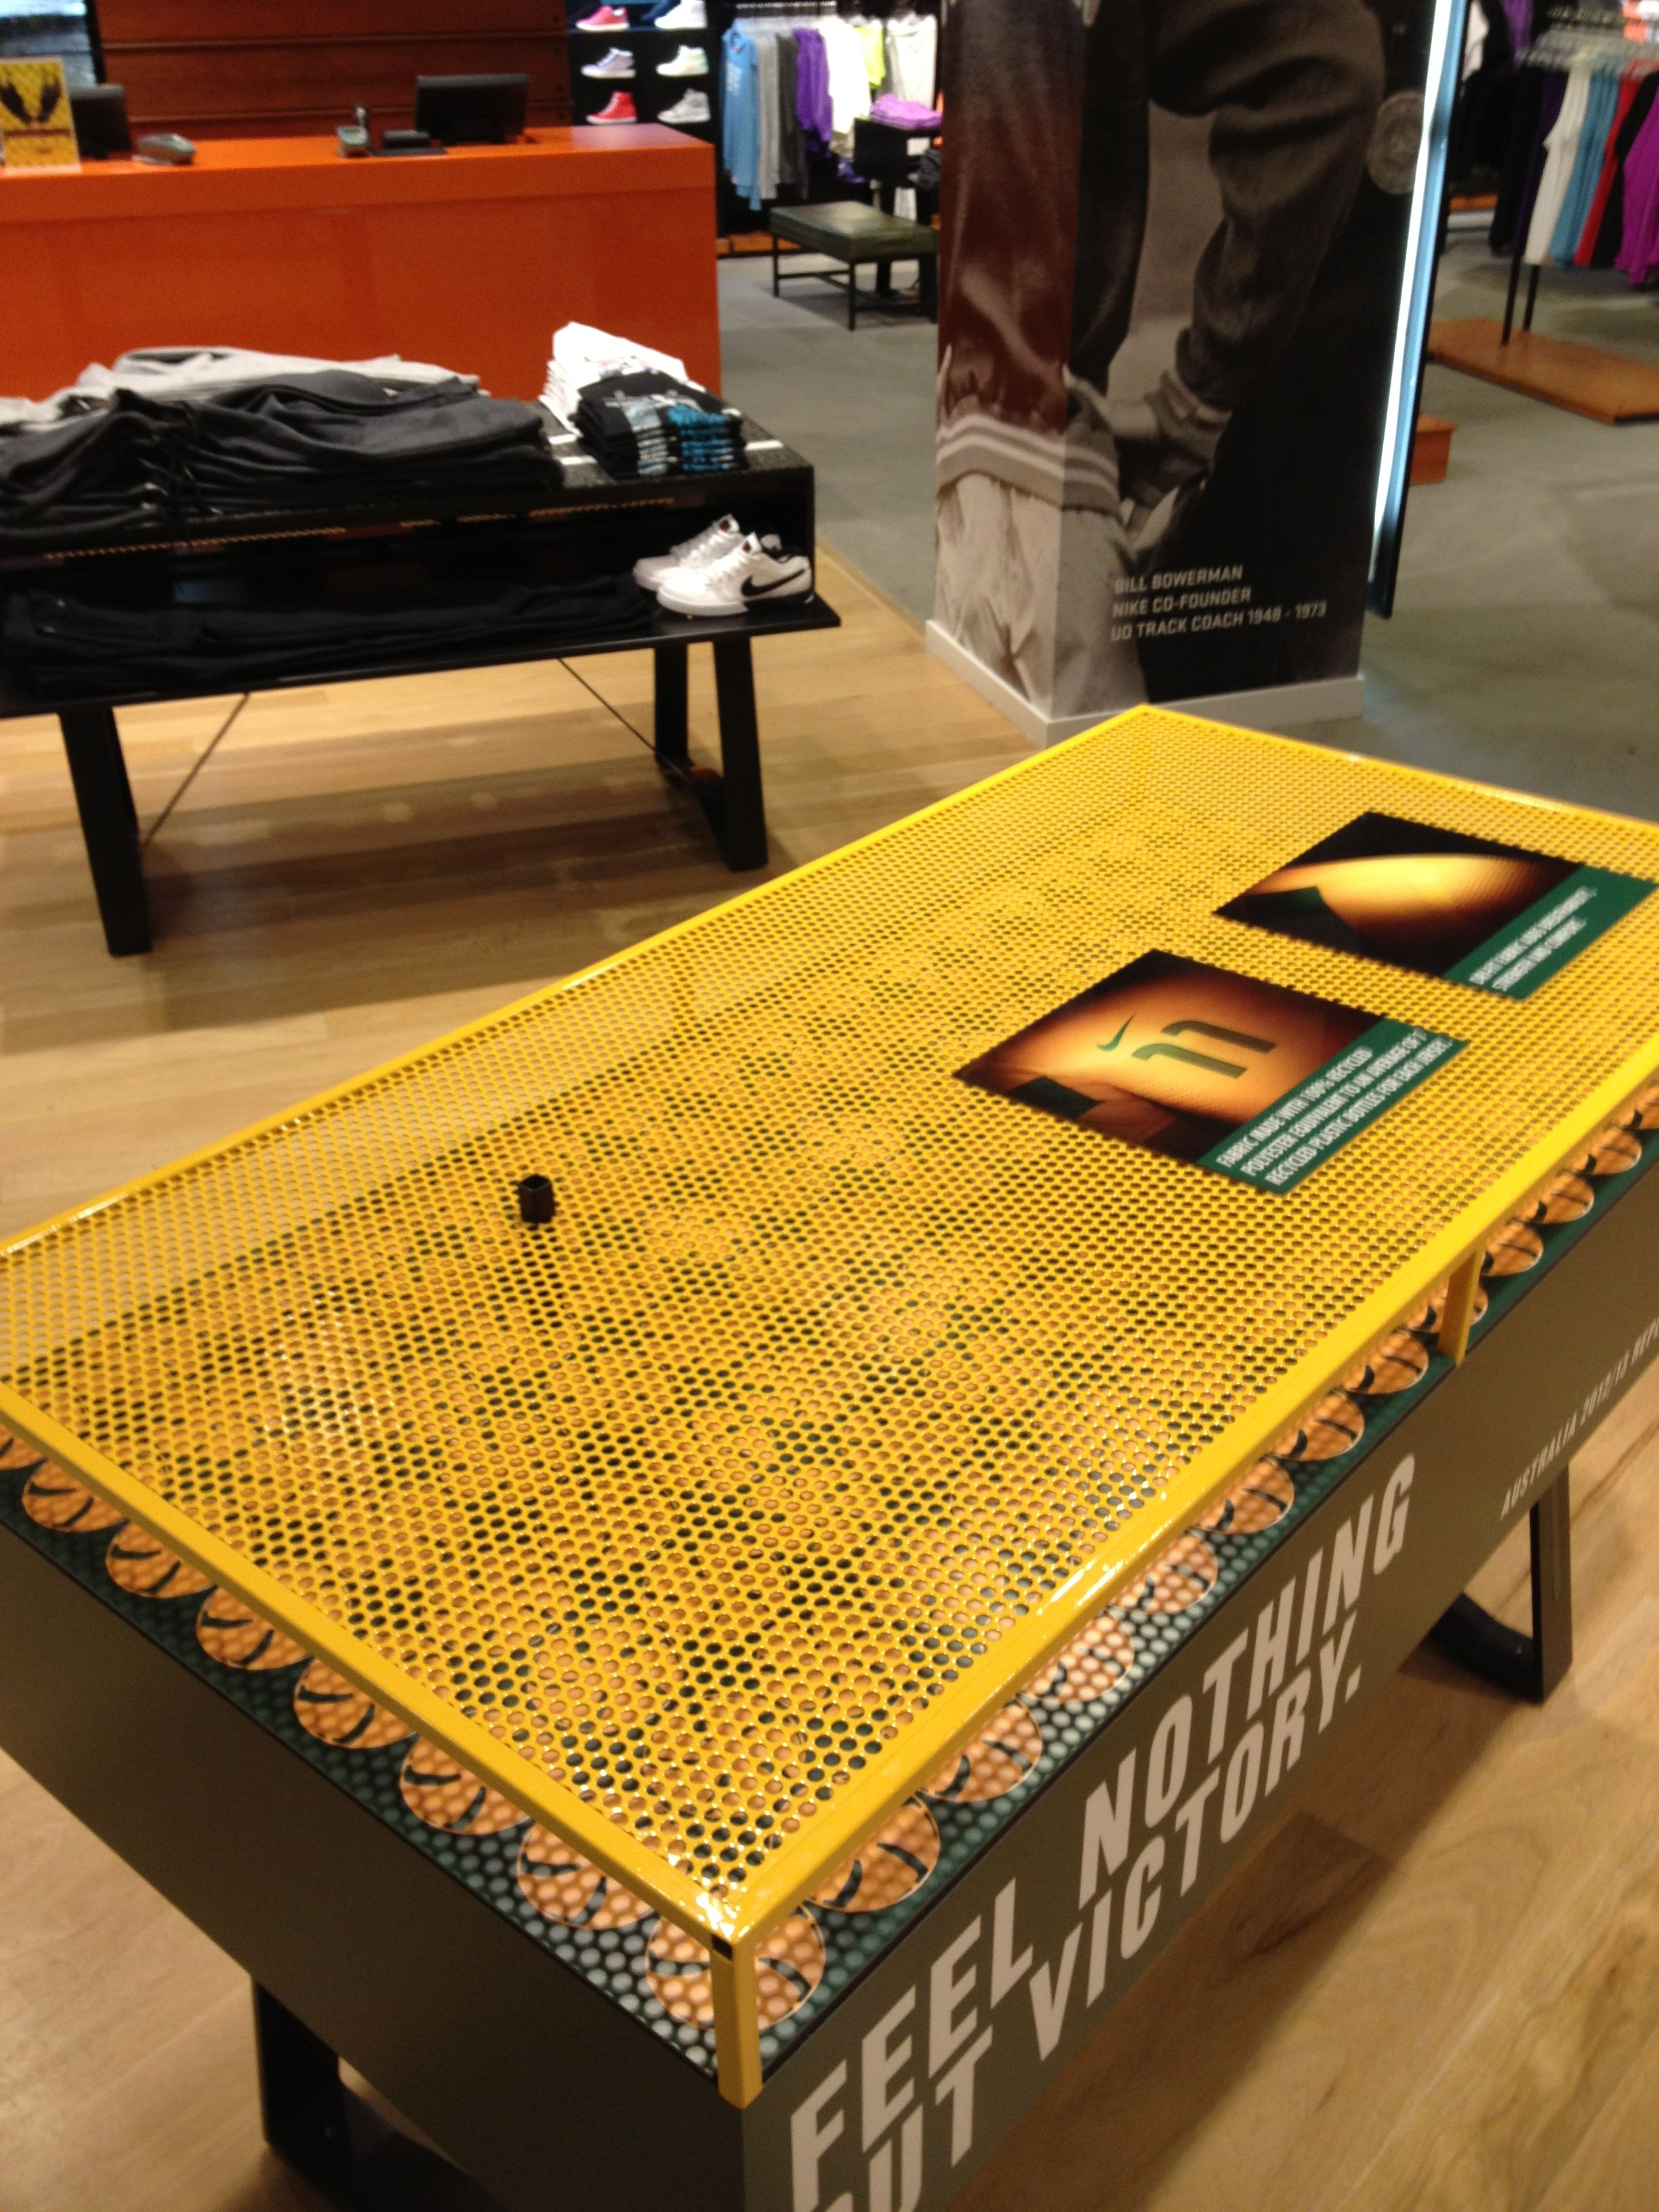 Nike Football Socceroos retail table display sports in store